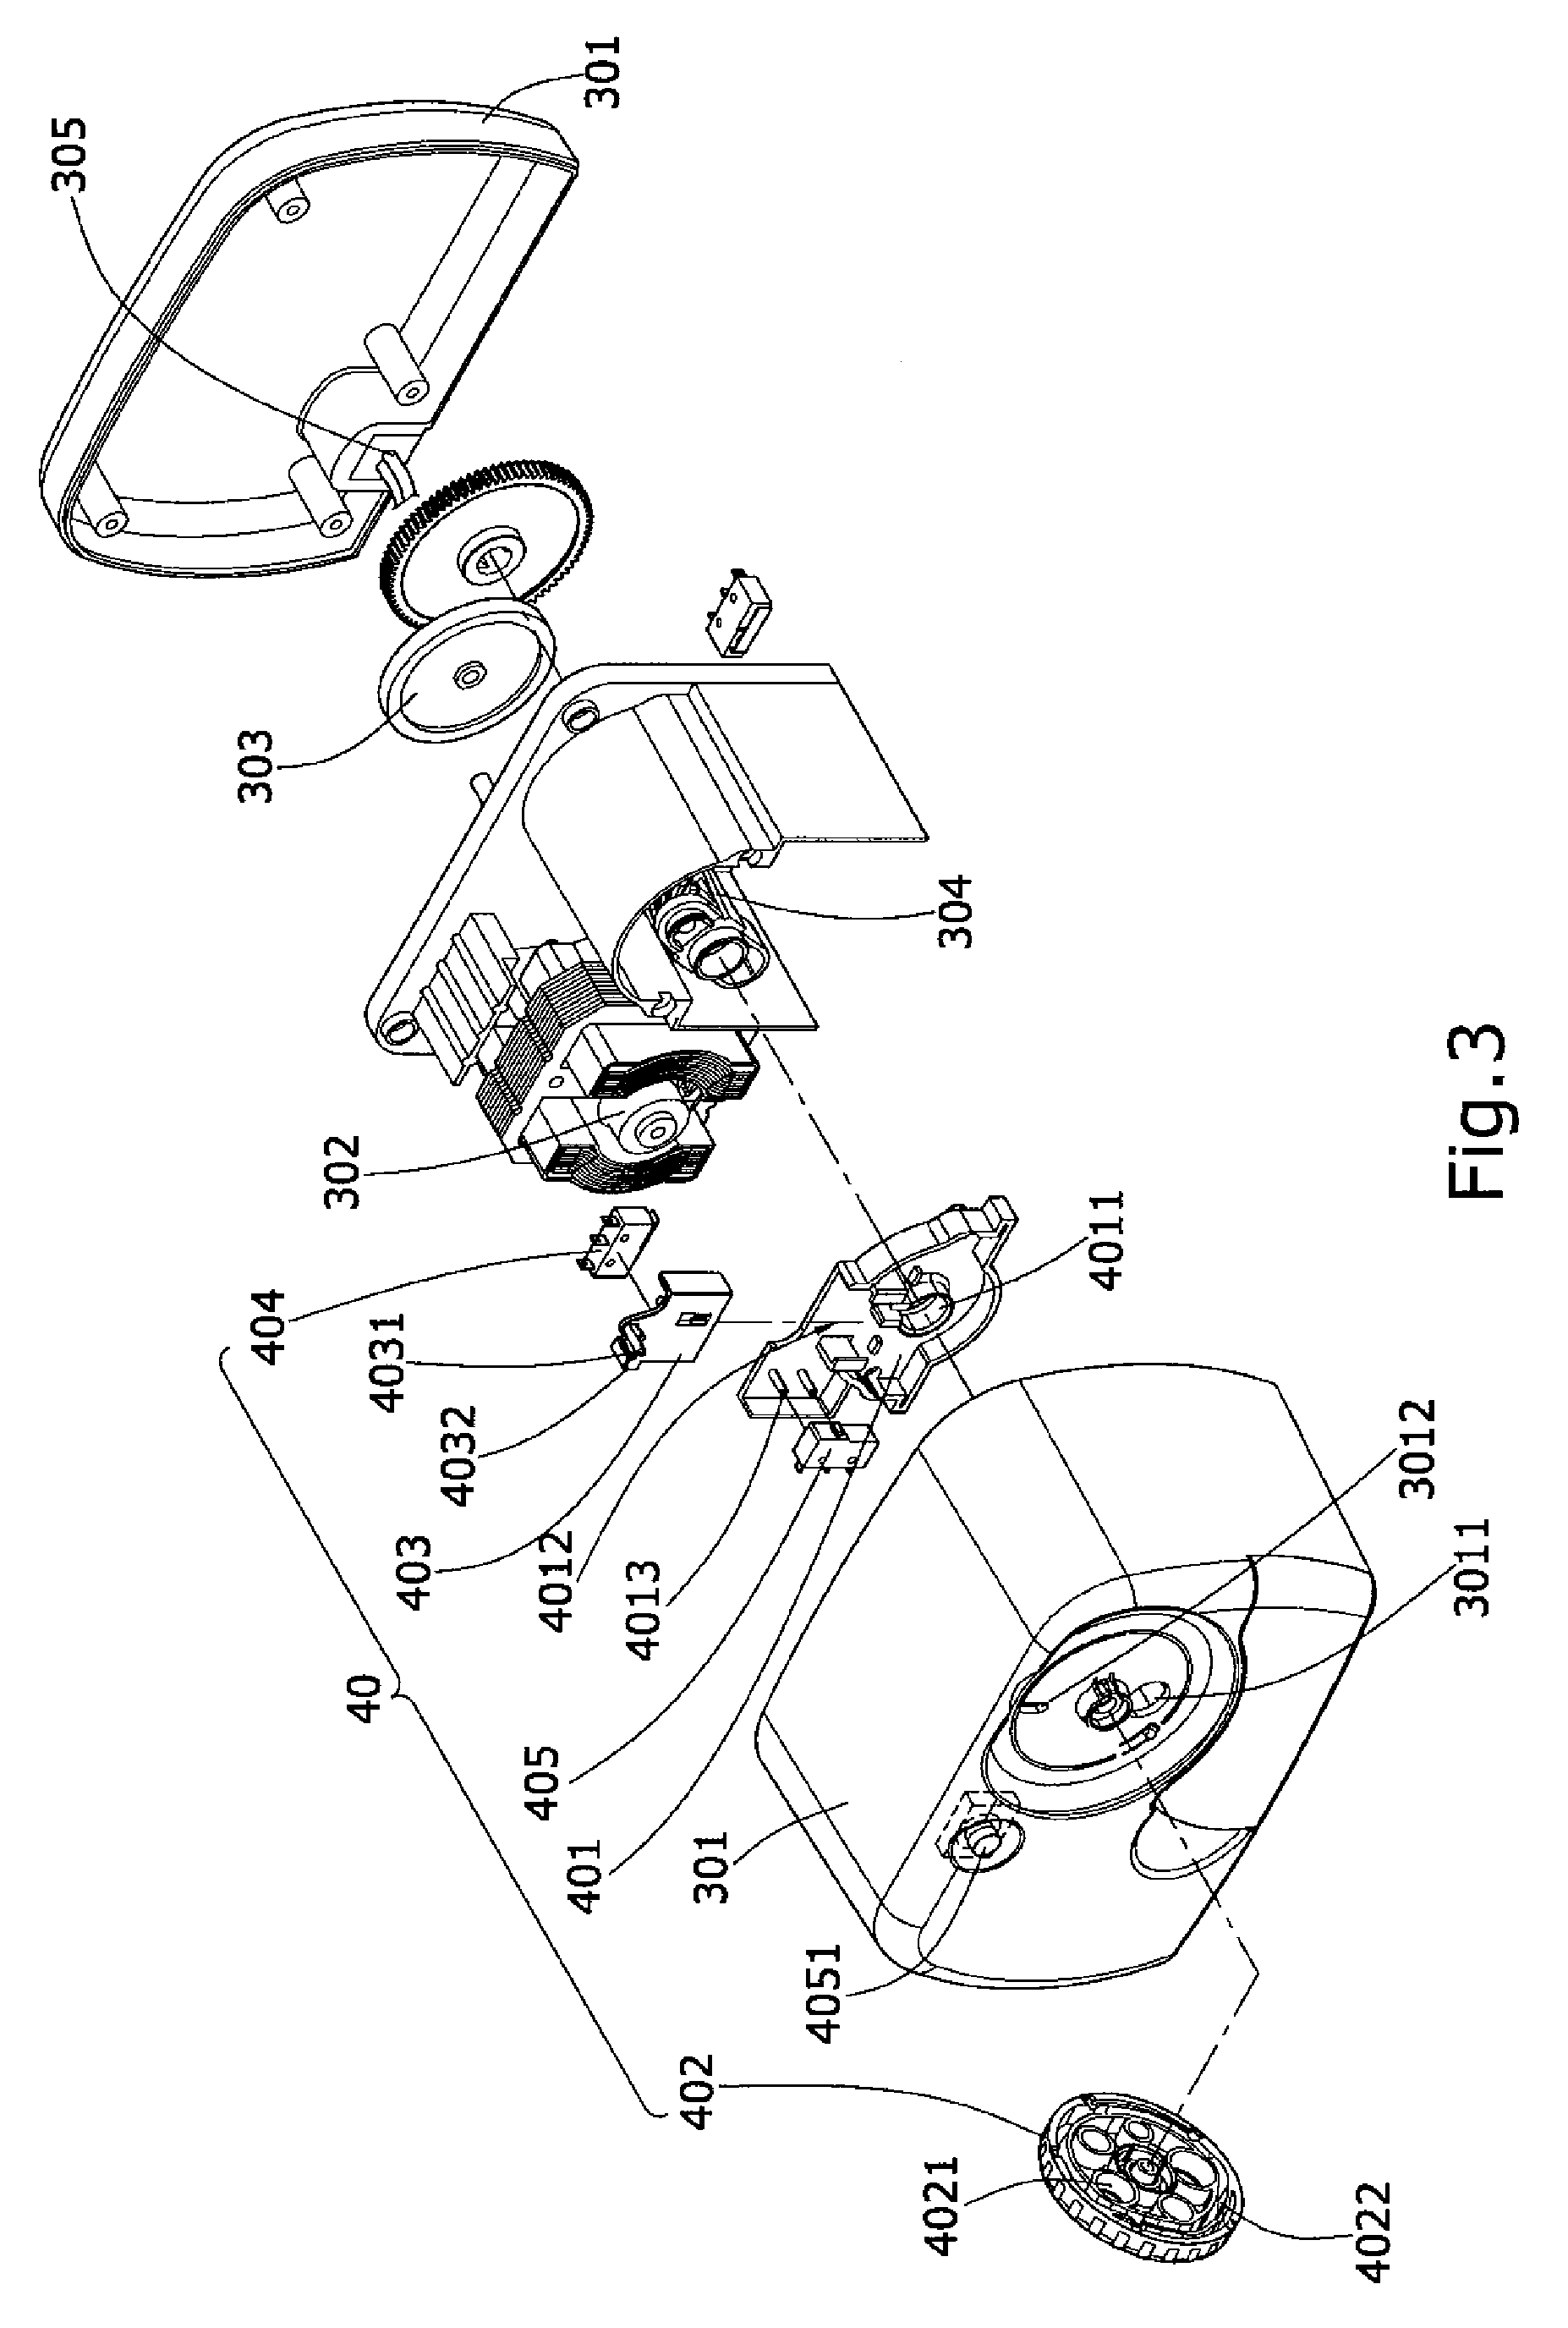 simple exploded view diagram plug wiring australia pictures of a with pencil sharpeners